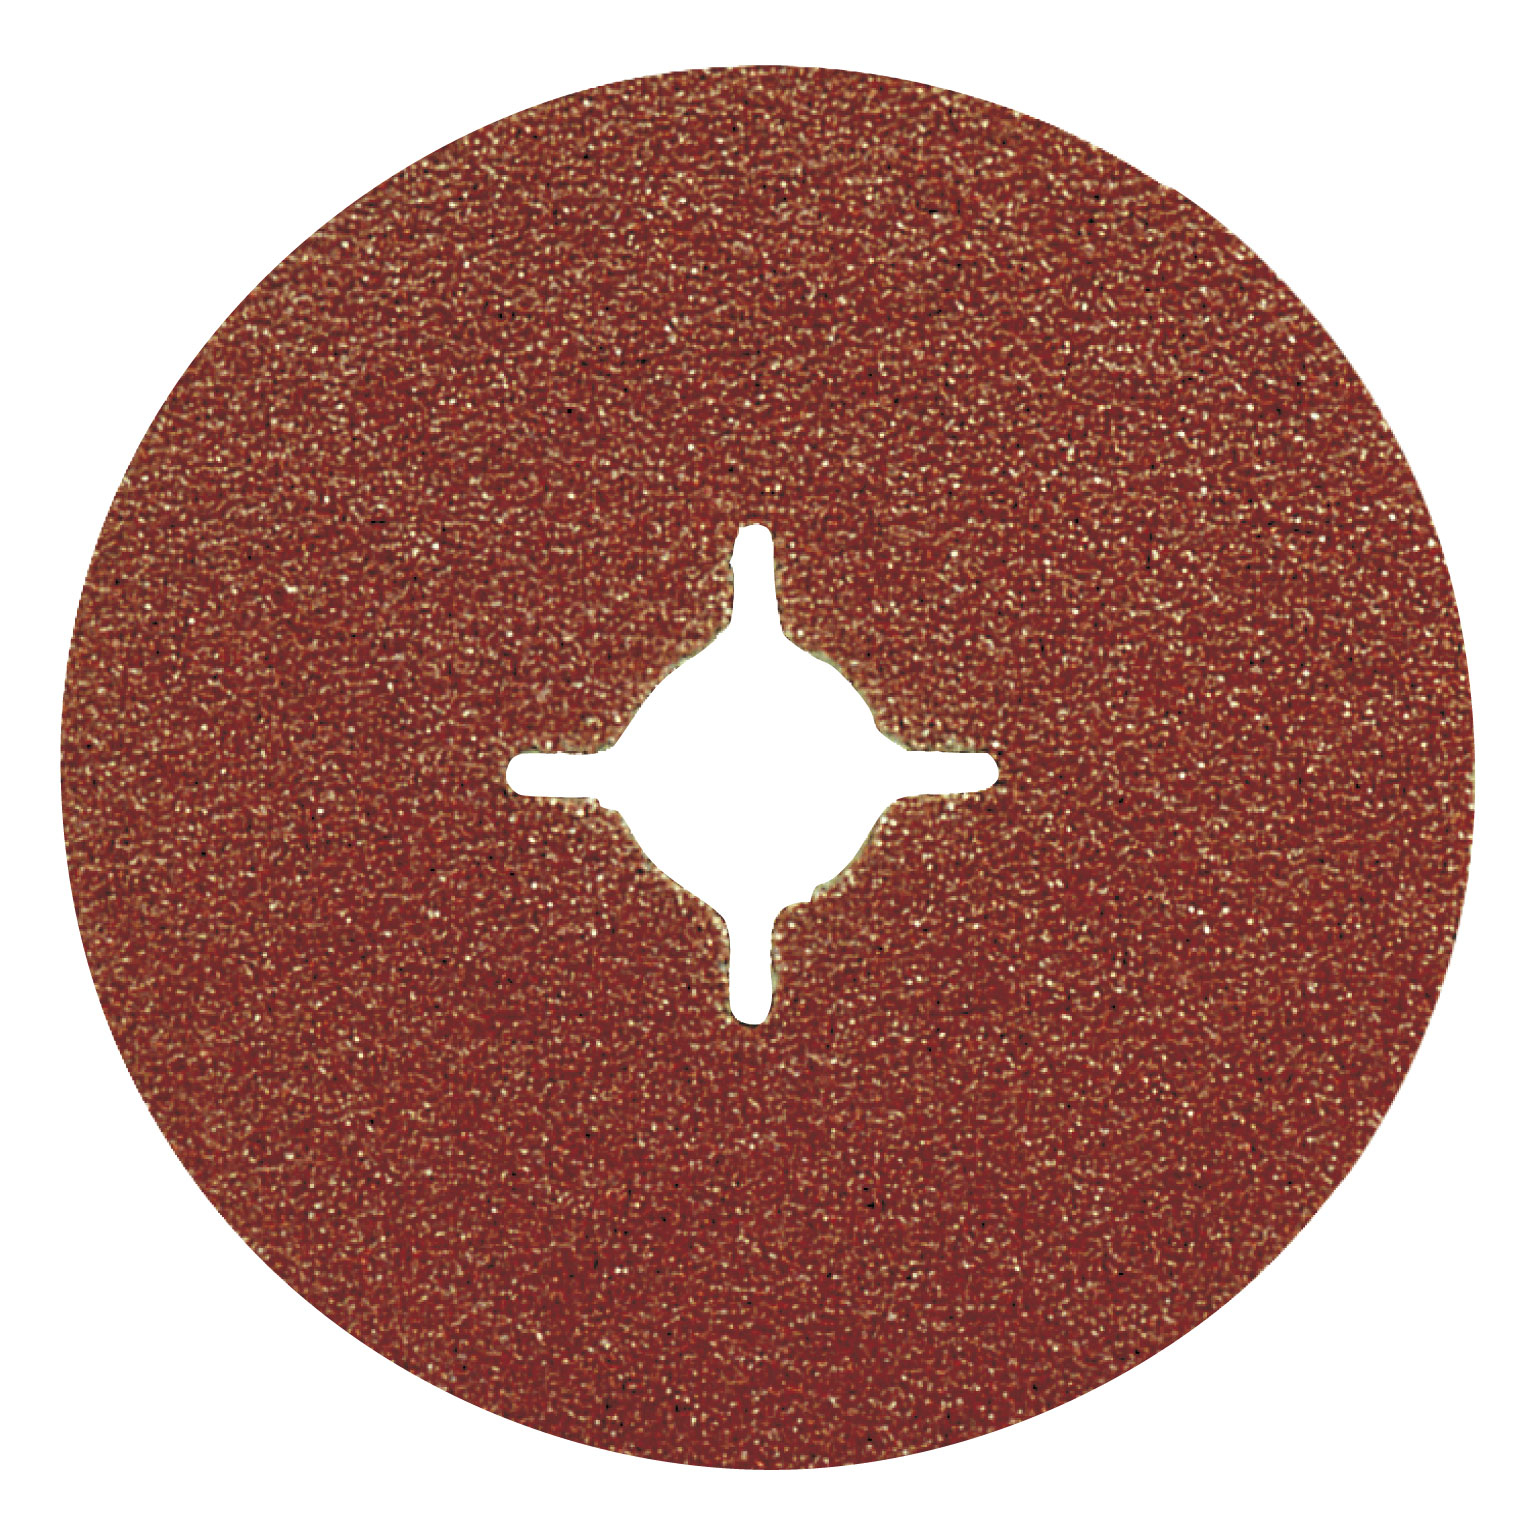 Dronco 115mm Fibre Disc 80 Grit